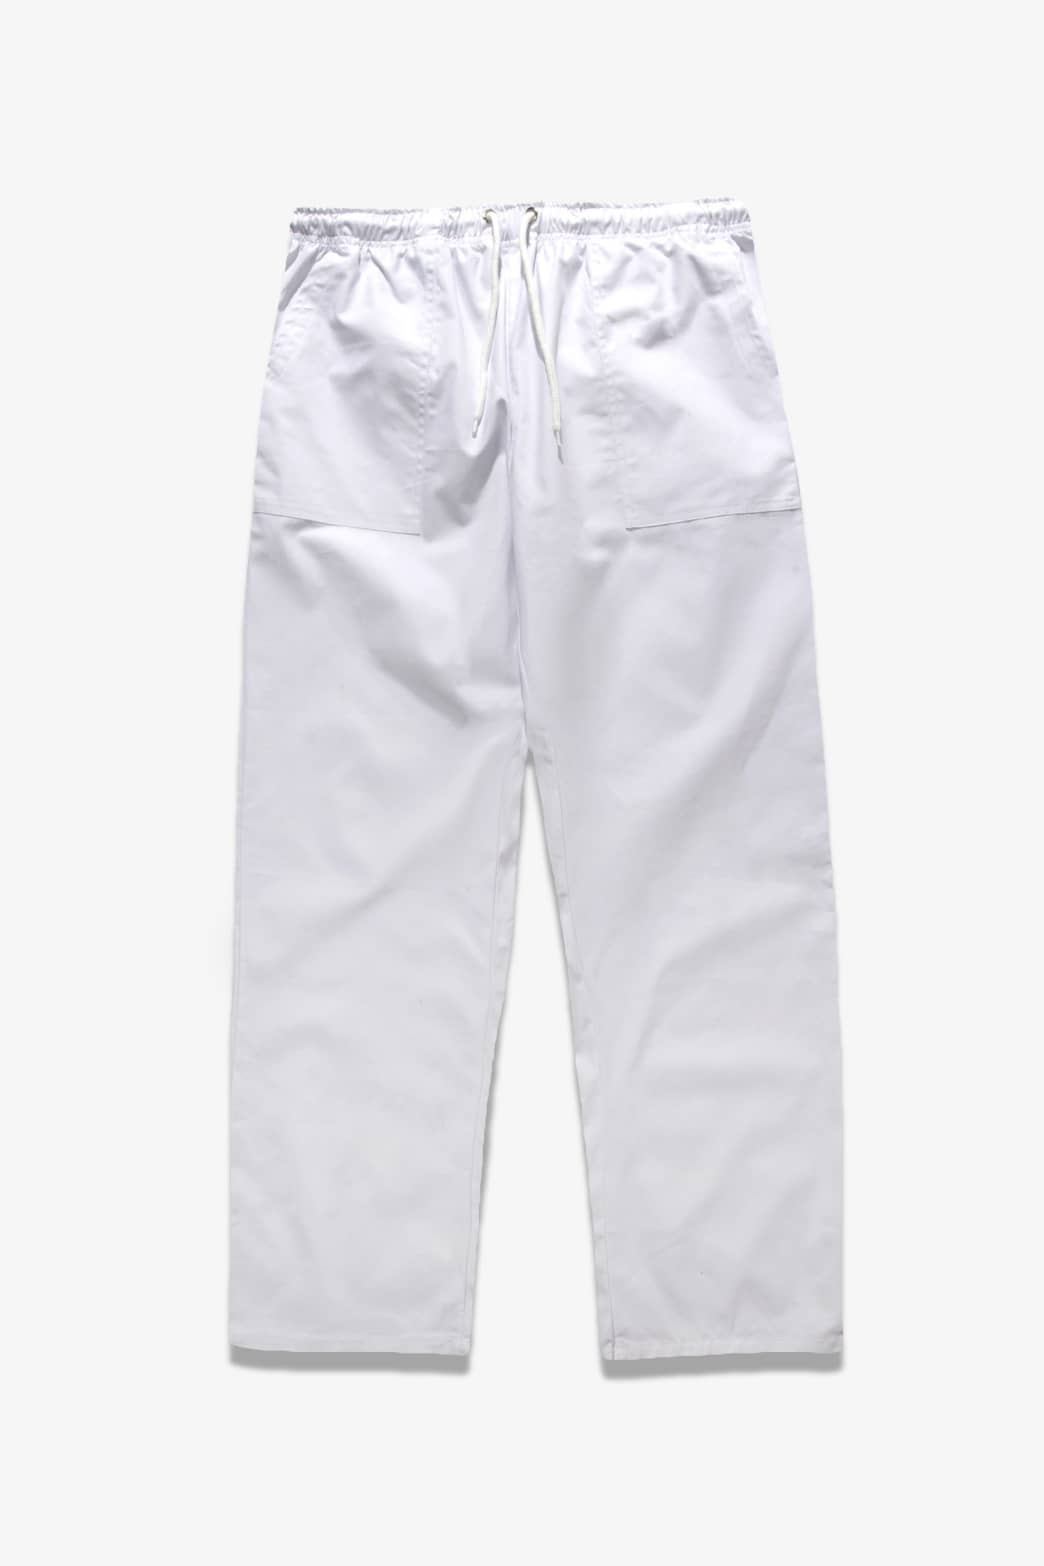 Service Works - Trade Chef Pants - White | Trousers by Service Works 4